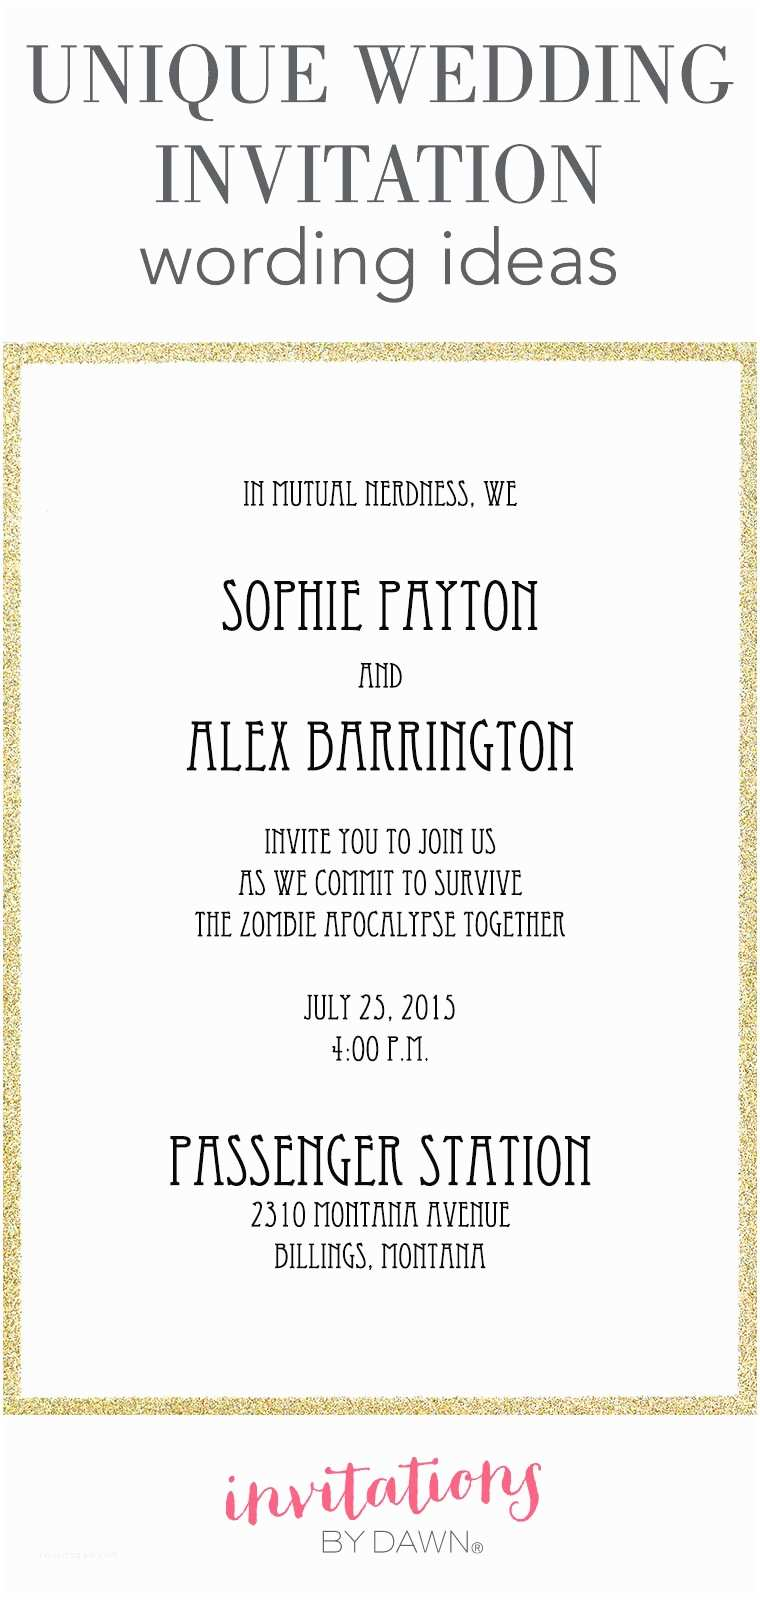 Wedding Invitations With Pictures Of Couple Ideas Marvellous Wedding Reception Wording